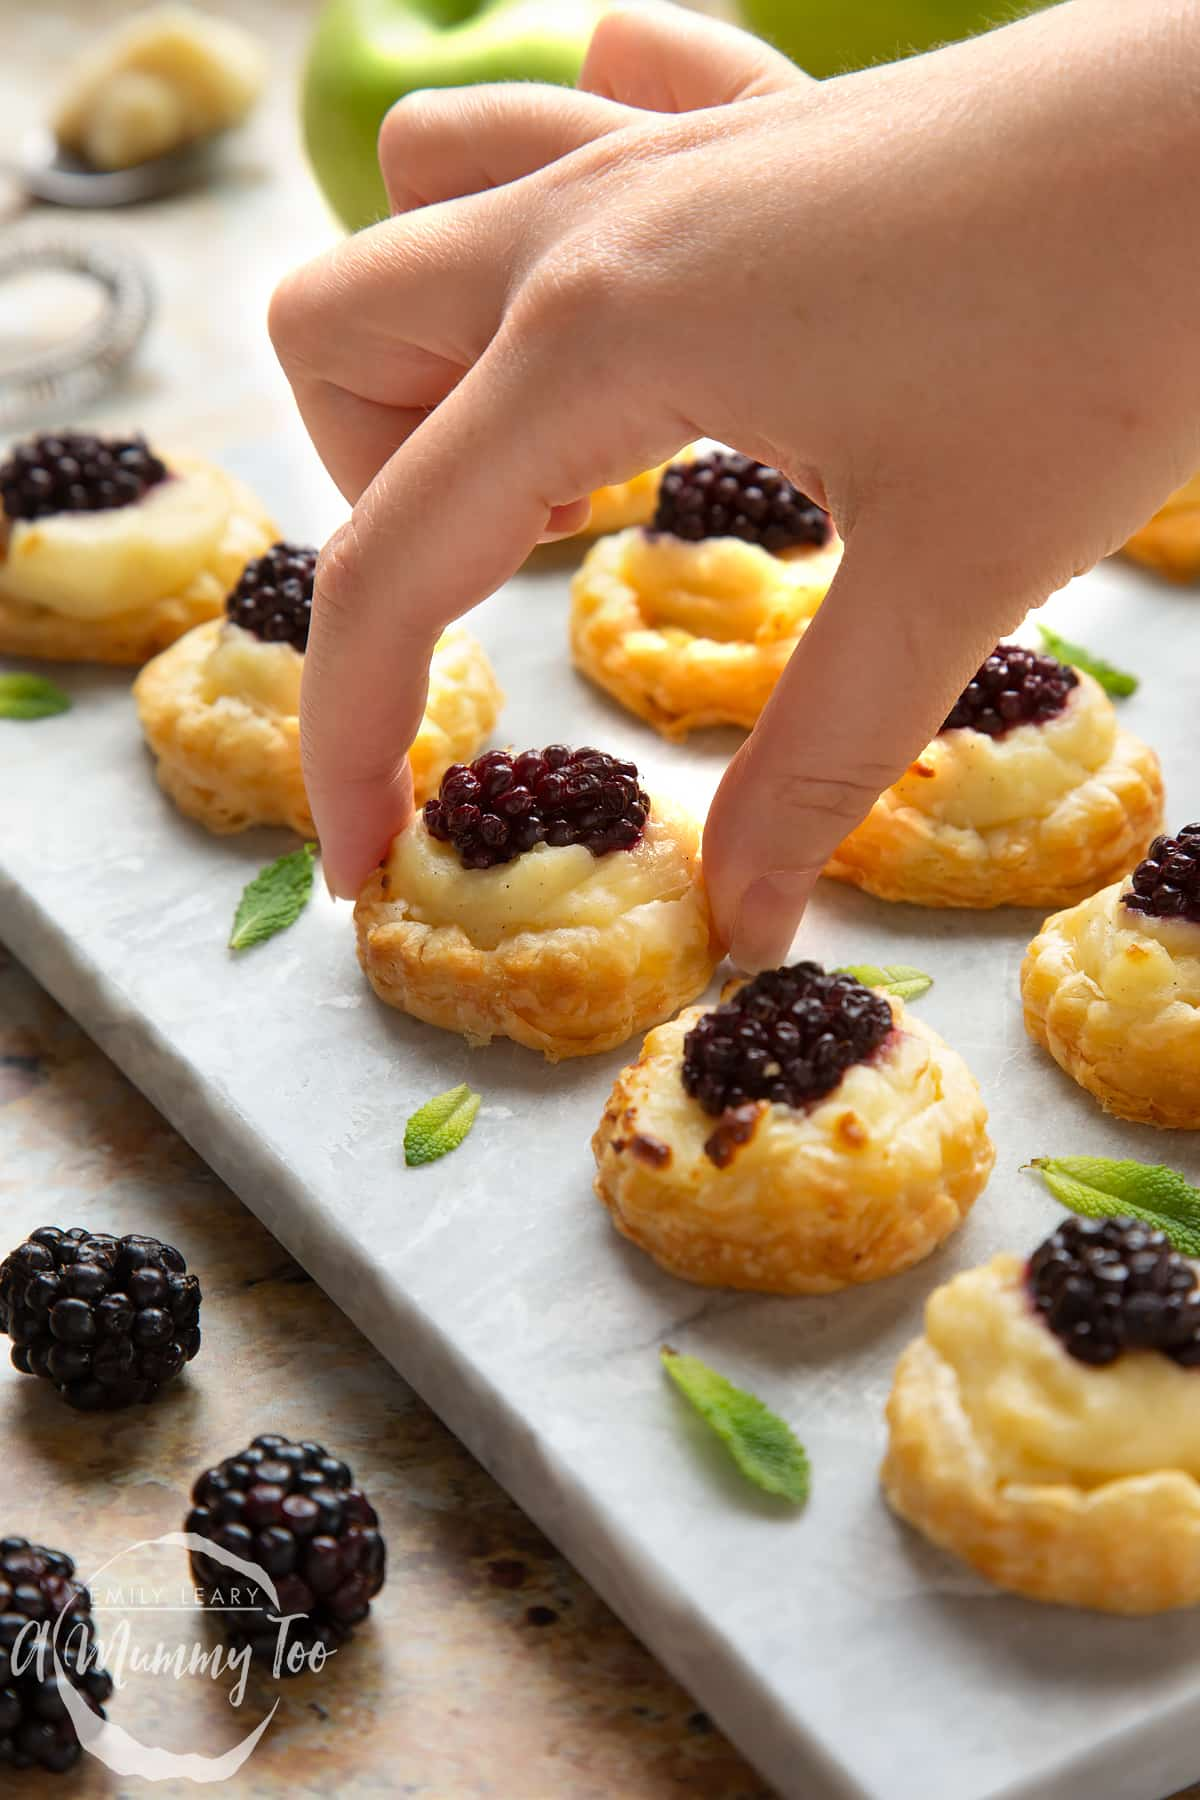 A hand reaches in to take a blackberry tartlet, comprised of a small puff pastry disc topped with sliced apple, pastry cream and a blackberry. More blackberry tartlets sit on the marble board around it.